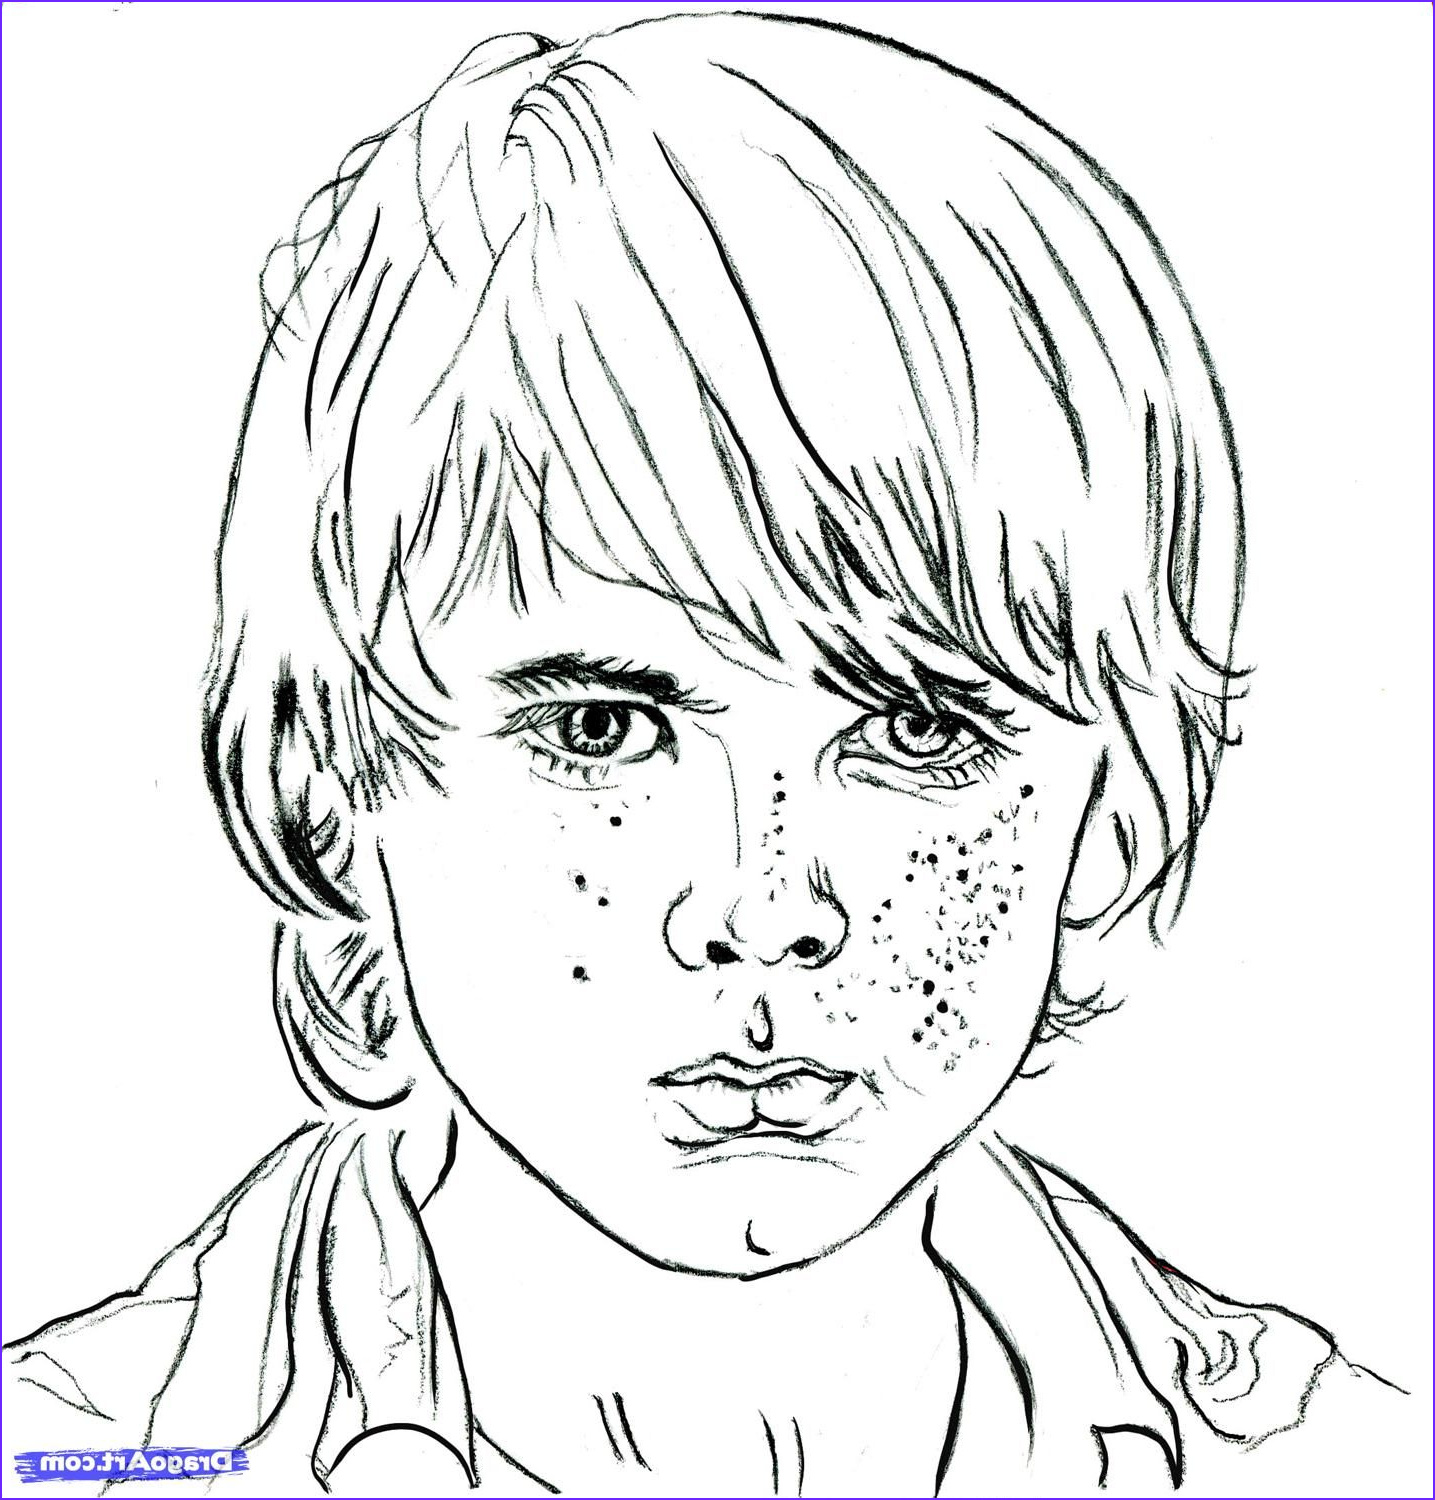 The Walking Dead Coloring Page Awesome Photos How to Draw Carl Carl From the Walking Dead Chandler